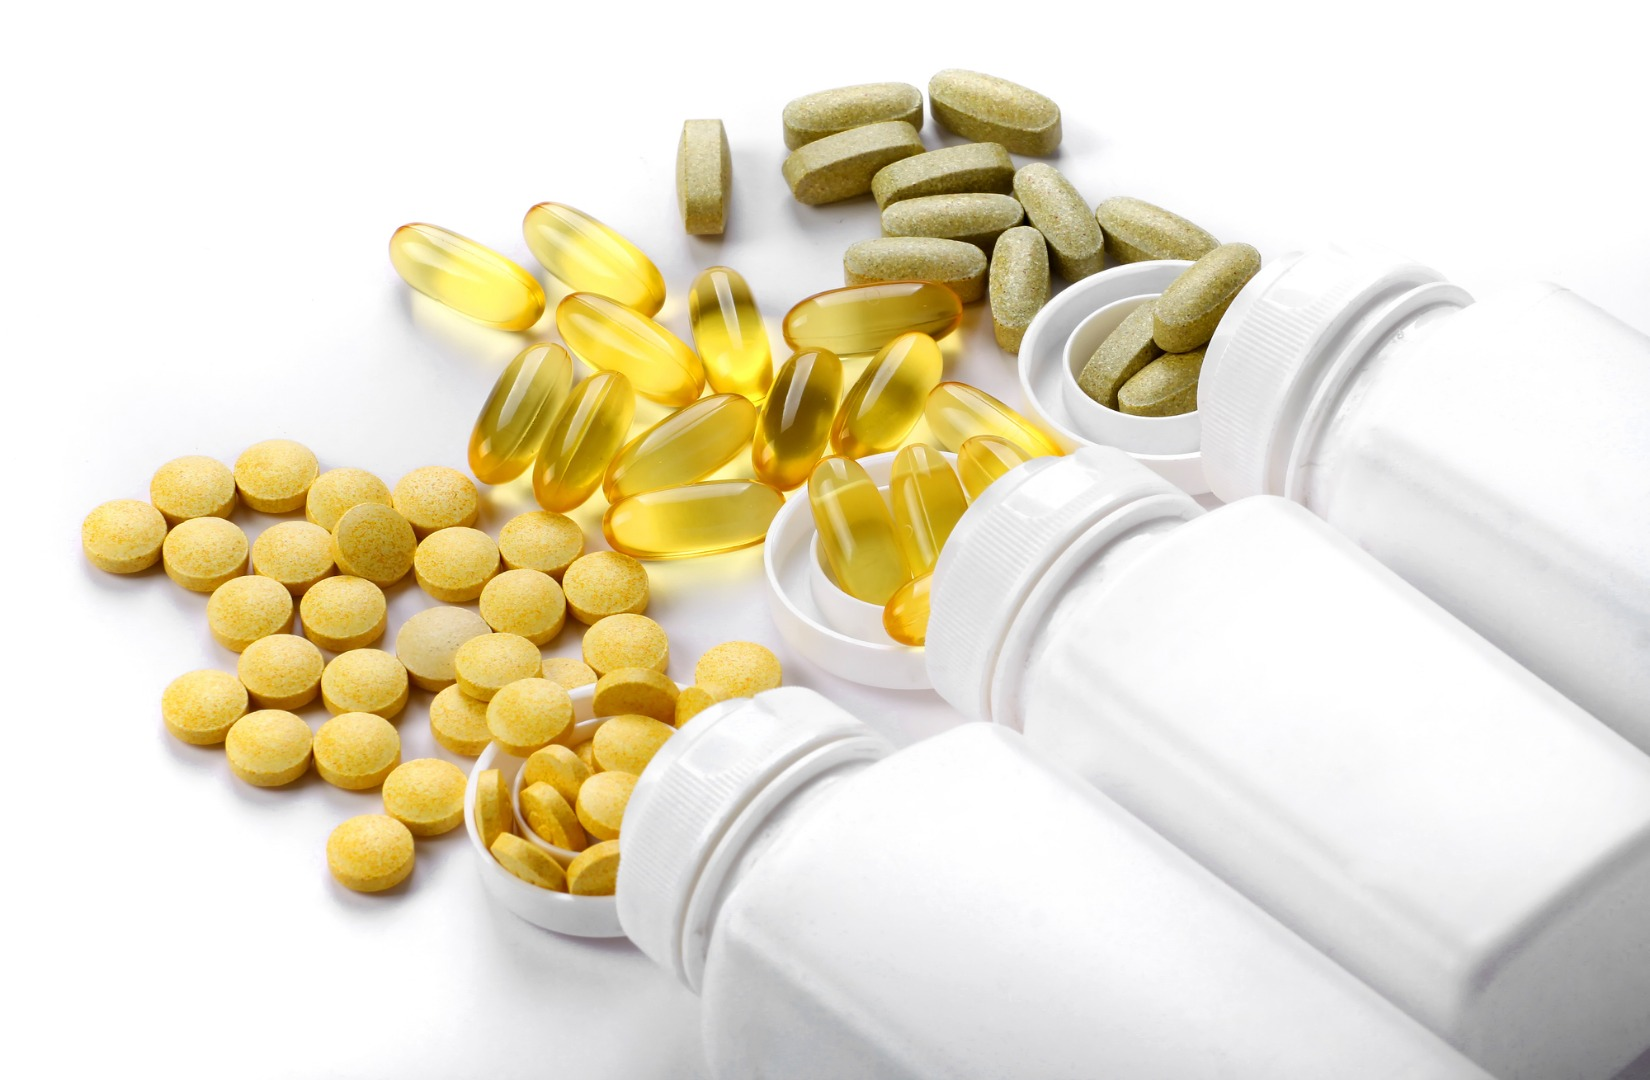 Massive meta-study finds most vitamin supplements have no effect on lifespan or heart health